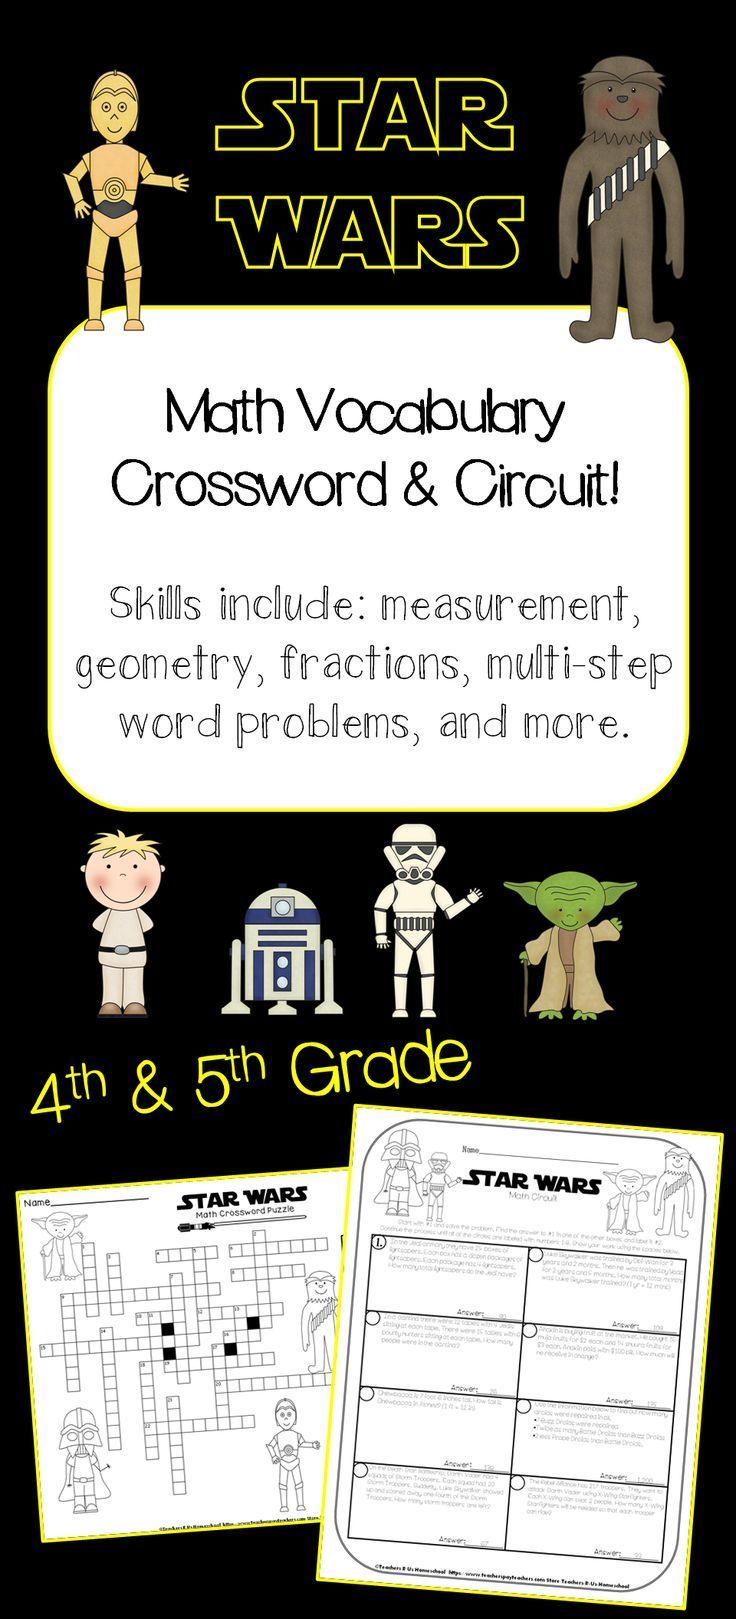 STAR WARS Math: May the 4th be with you